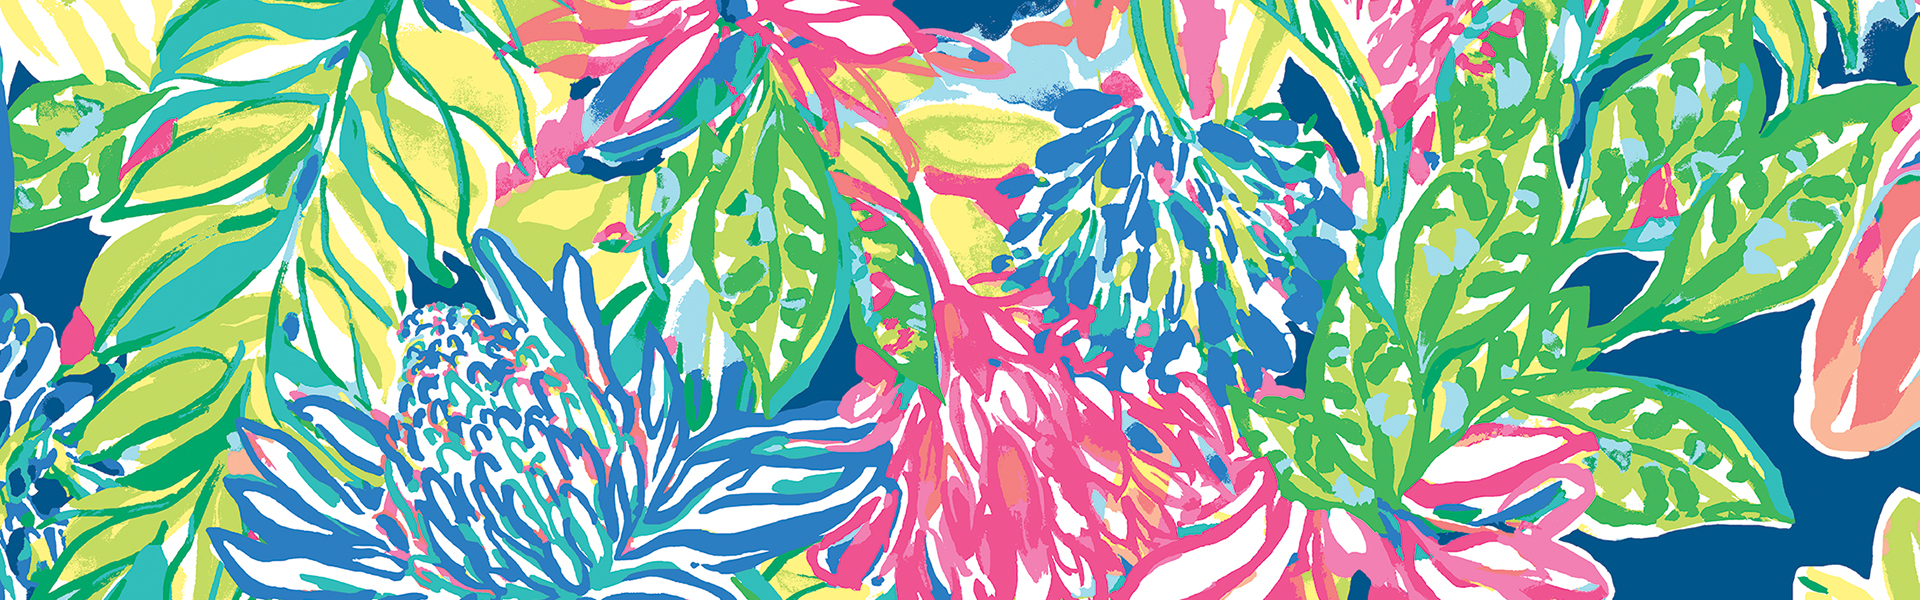 878c77bc17a625 LILLY.V5.RD2 Travelers Palm©Lilly Pulitzer.1920 | Flamingo Magazine